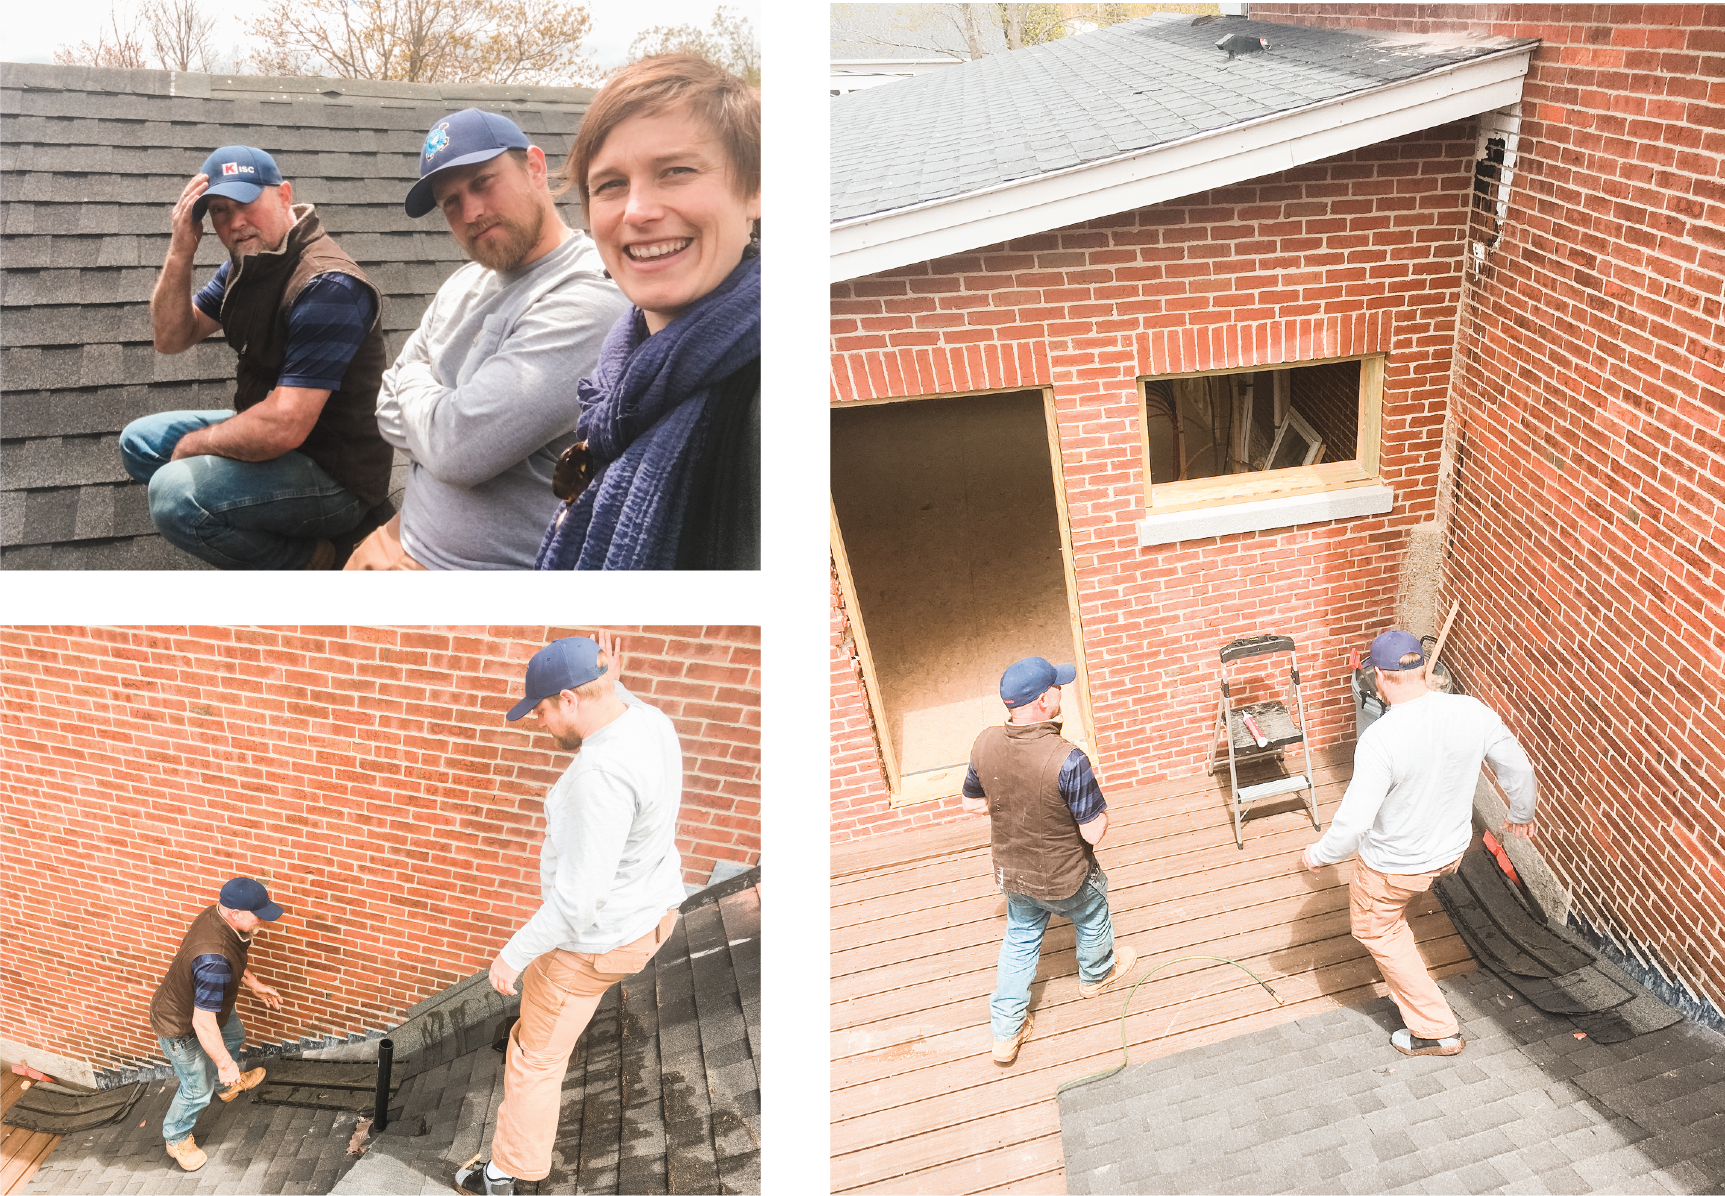 Sometimes you just have to get on the roof to check on progress. 🏡 This is Ben 🧔🏼 the owner & Jeff 👨🏼‍🔧 the contractor at one of our biweekly site meetings. We used this perch to discuss the various vents that penetrate our main roof.... Work doesn't feel like work when your clients and colleagues are as cool as these two. ☺️  Do you live in Maine 🌲 and need help managing your project? Give me a call. 🙋🏻‍♀️ I'm ridiculously organized and an awesome communicator, two things often missing from construction projects.